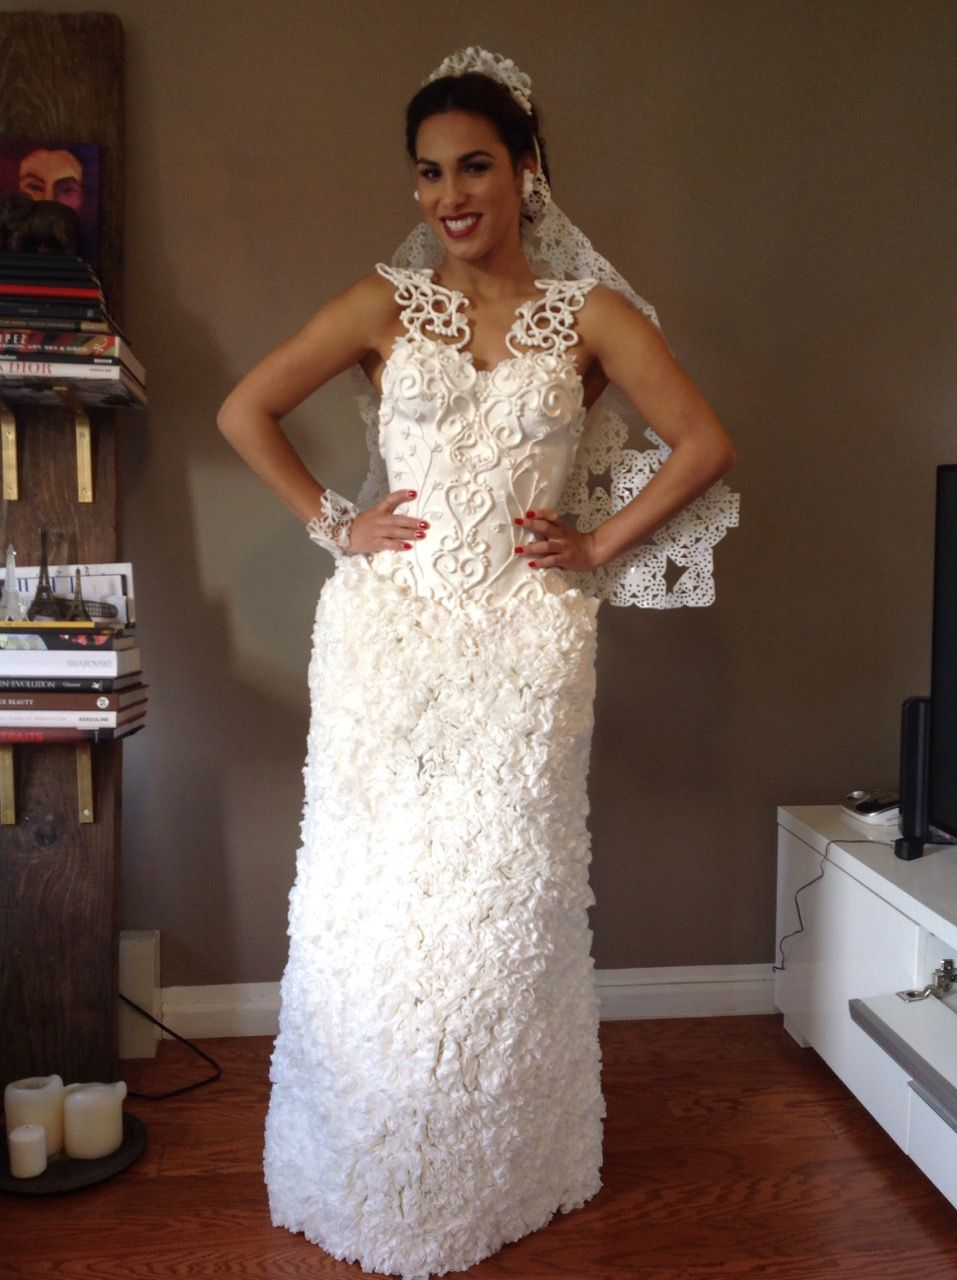 Top ten tpdress entry by augusto manzanares of new york ny the top ten entry by augusto manzanares of new york ny the annual toilet paper wedding dress contest presented by cheap chic weddings and charmin ombrellifo Choice Image